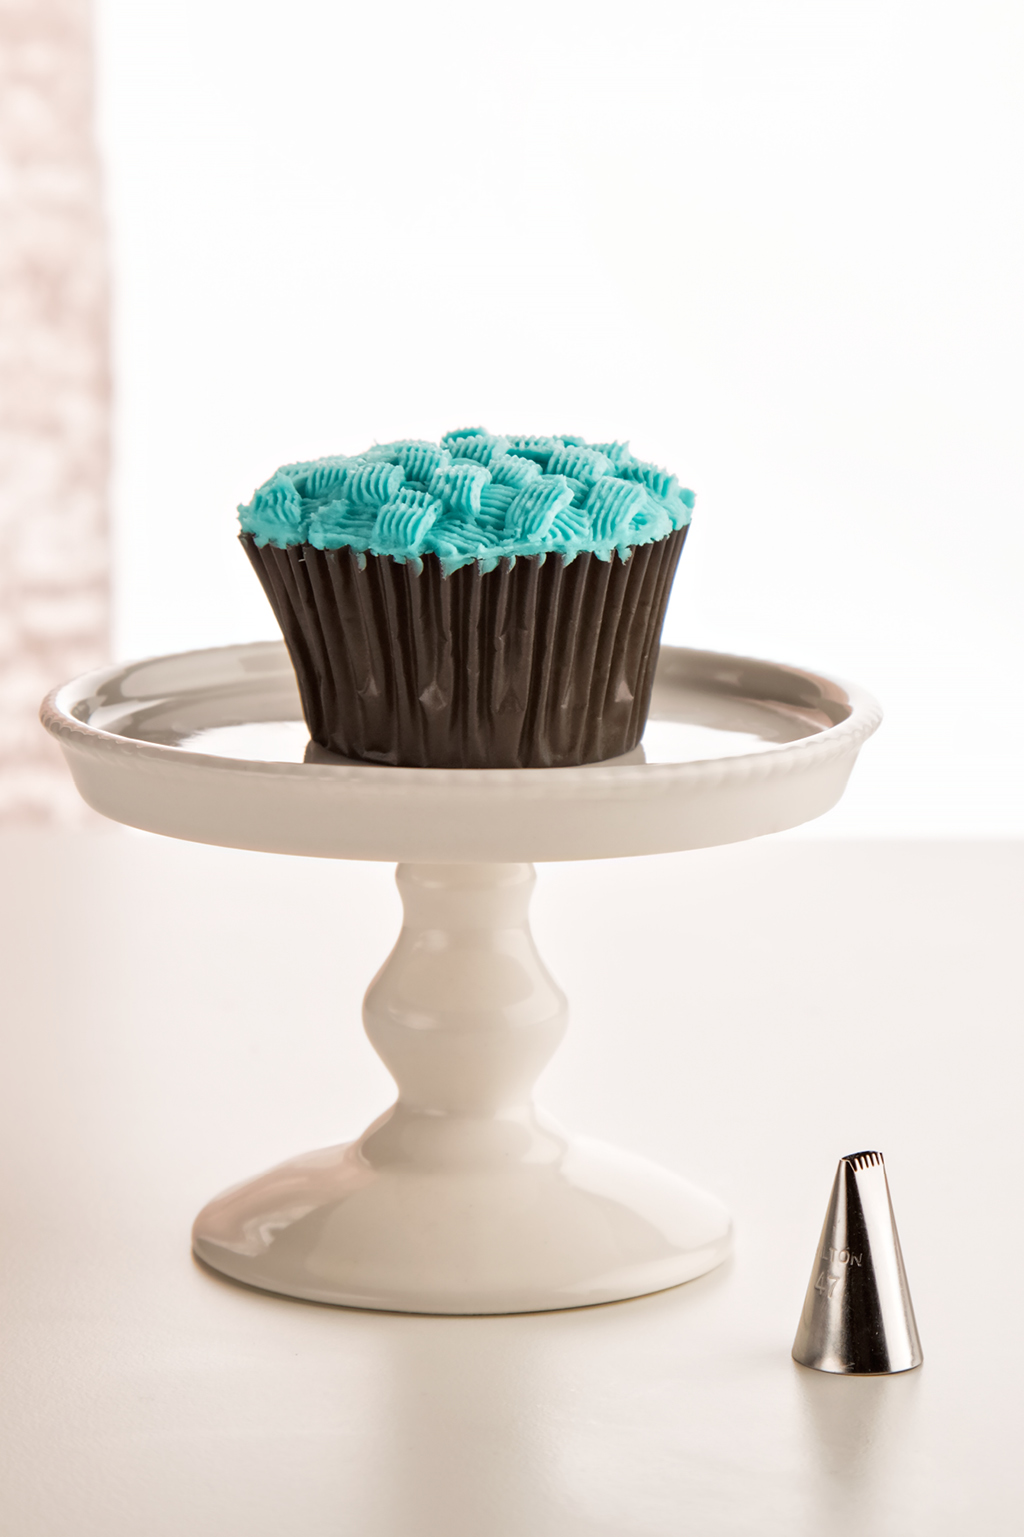 Cupcake Frosting Specialty